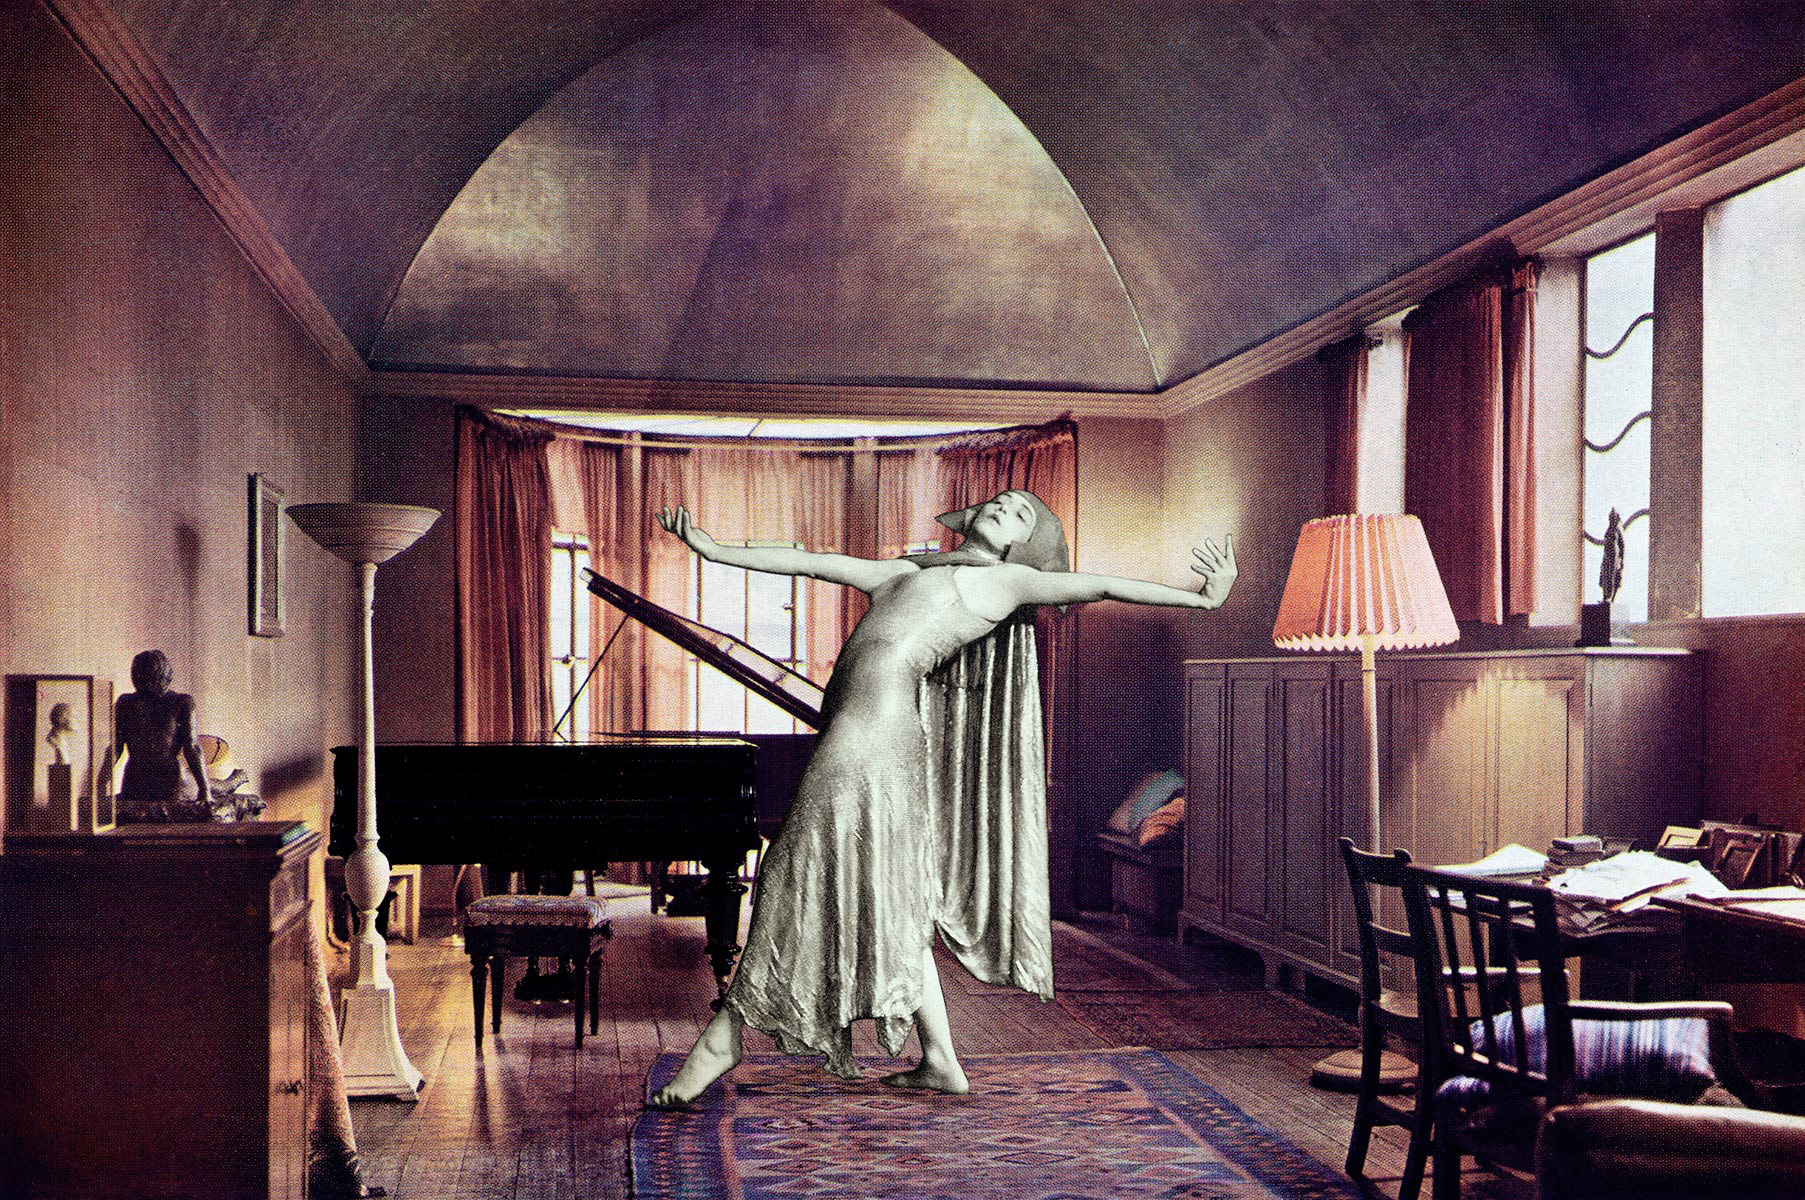 Mary Wigman dances in a music room designed by Oliver Hill. The walls and ceiling are papered in gold leaf and varnished. The space is an interesting study in tones of beige, brown, and gold. The curved ceiling is designed for sound. (2015)